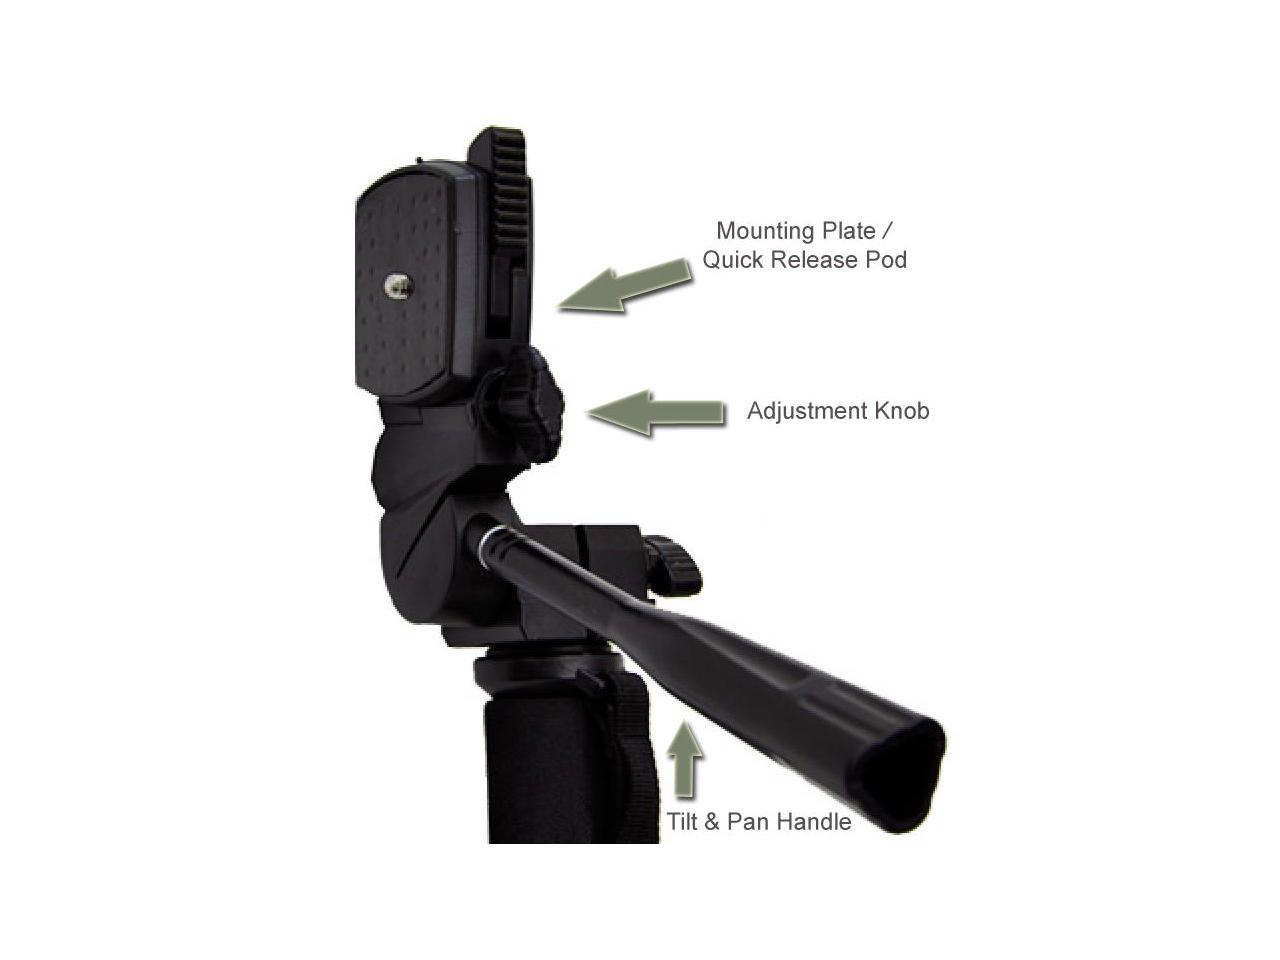 For Fujifilm FinePix S9800 Professional Black 72 Monopod//Unipod Quick Release